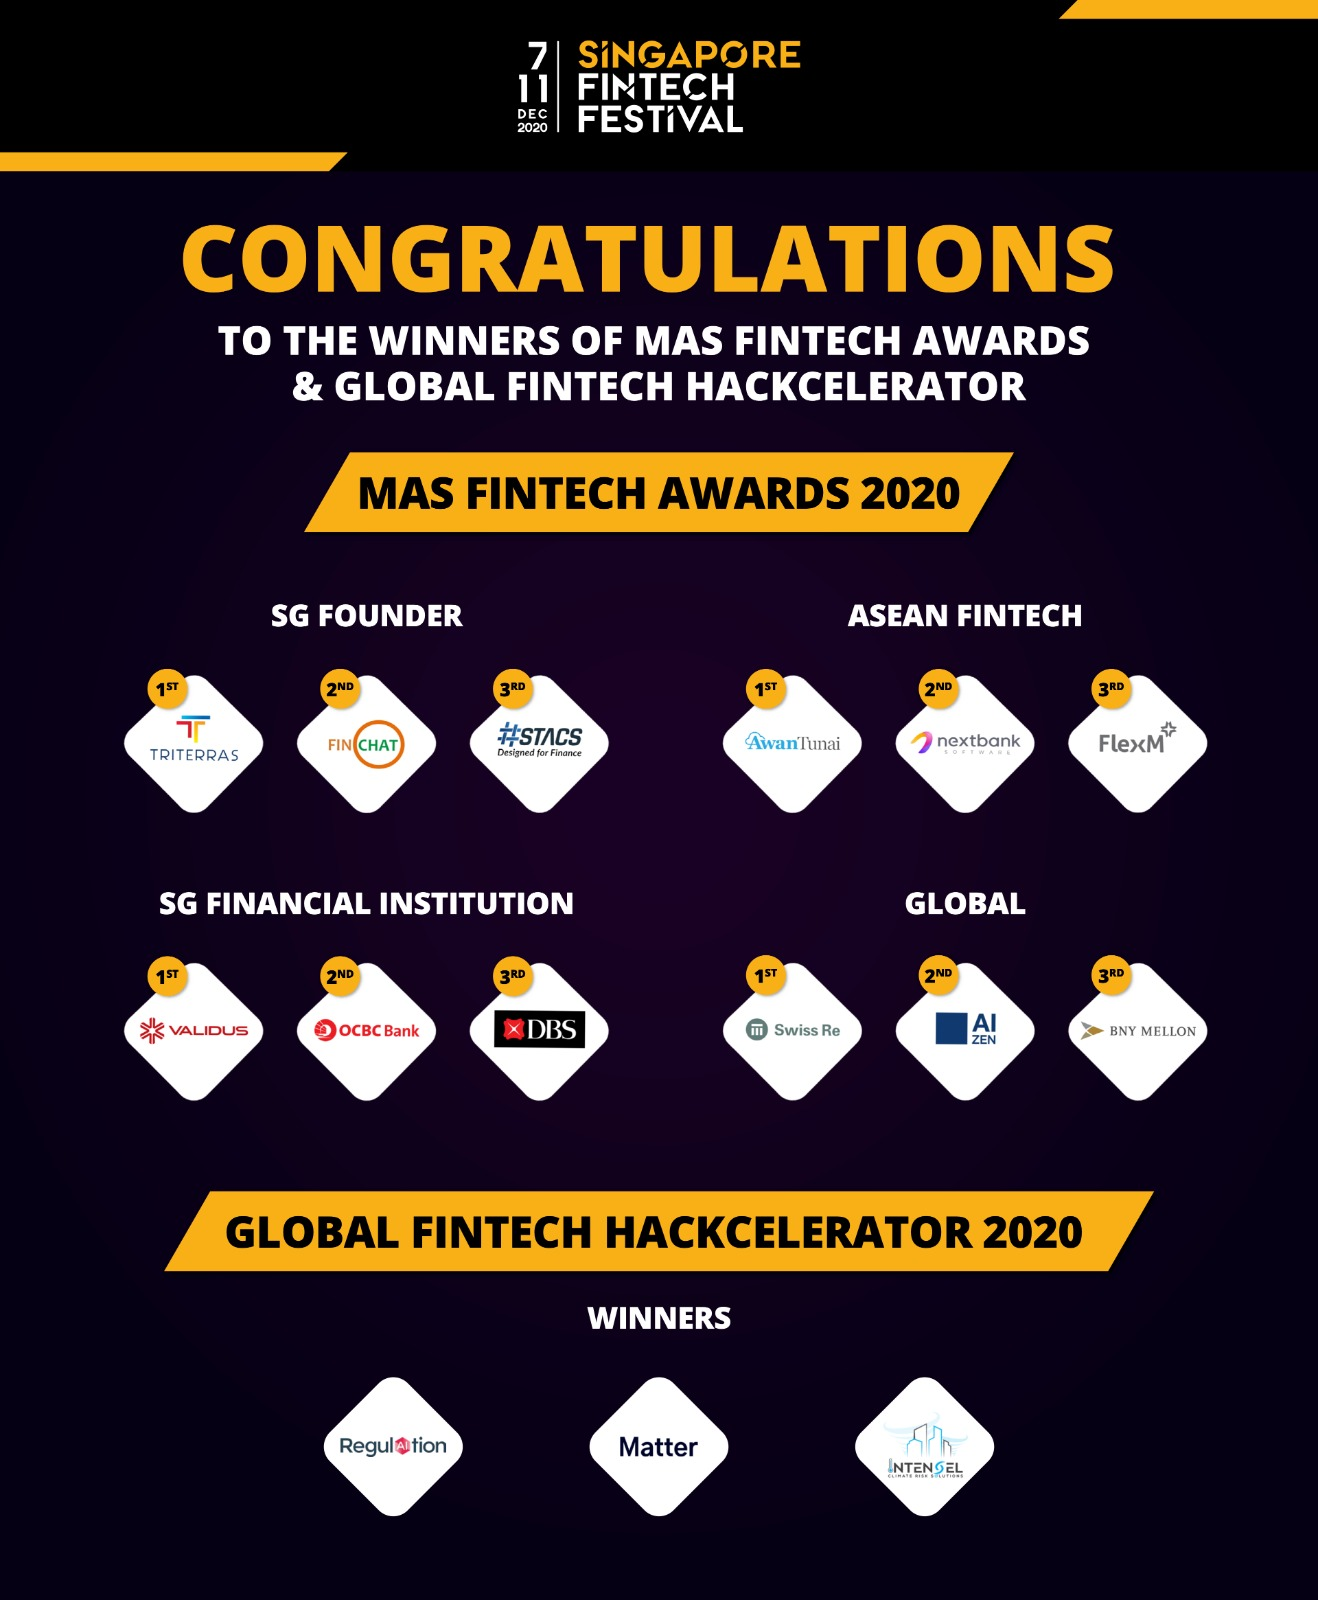 Winners of 2020 MAS Fintech Awards and Global Fintech Hackcelerator, @sgfintechfest, via Twitter